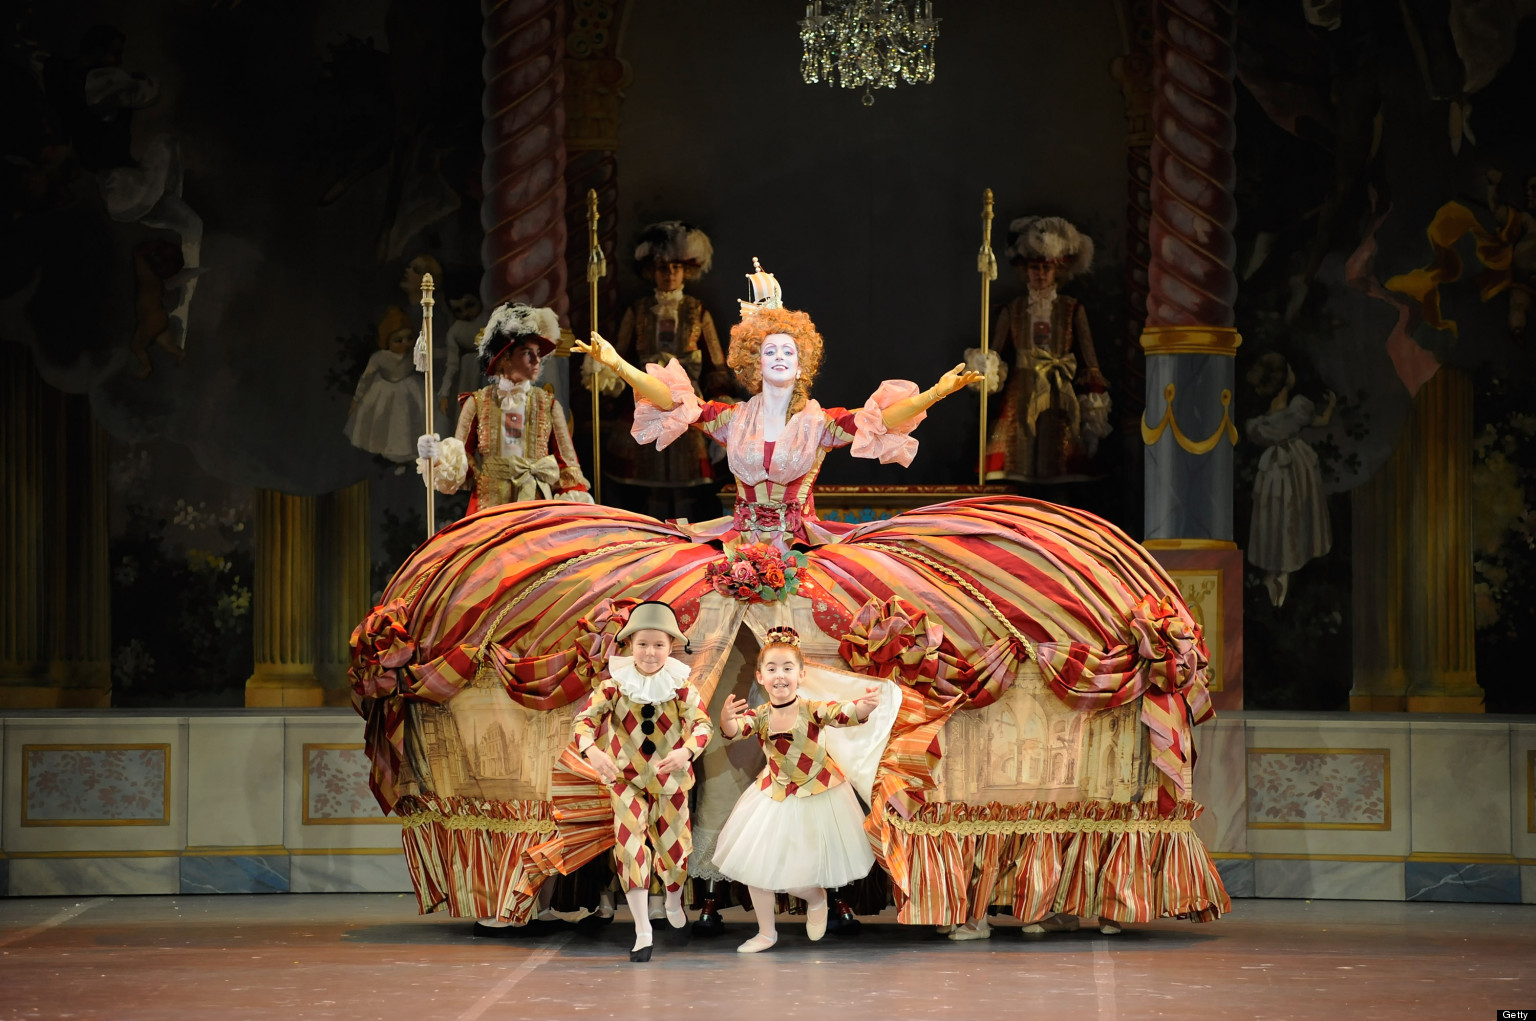 ' ' from the web at 'http://i.huffpost.com/gen/882385/images/o-THE-NUTCRACKER-facebook.jpg'